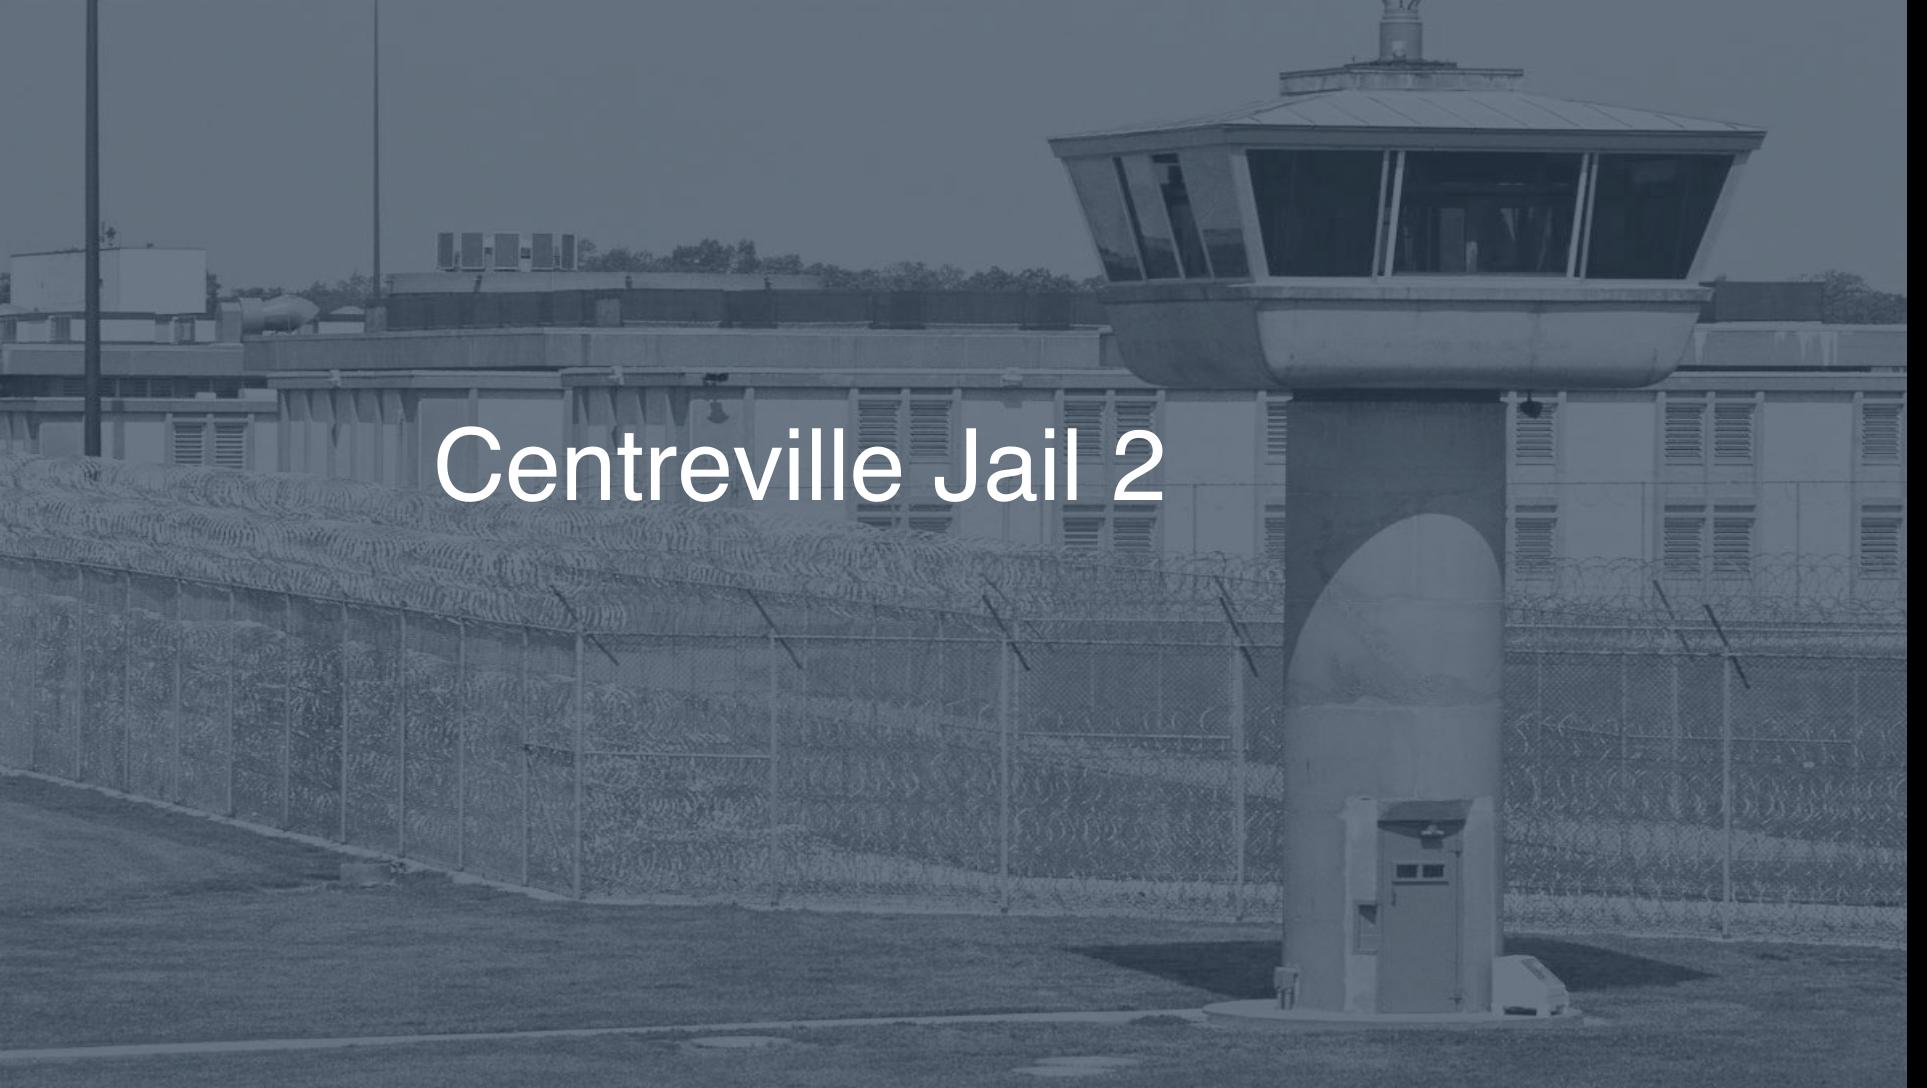 Centreville Jail correctional facility picture